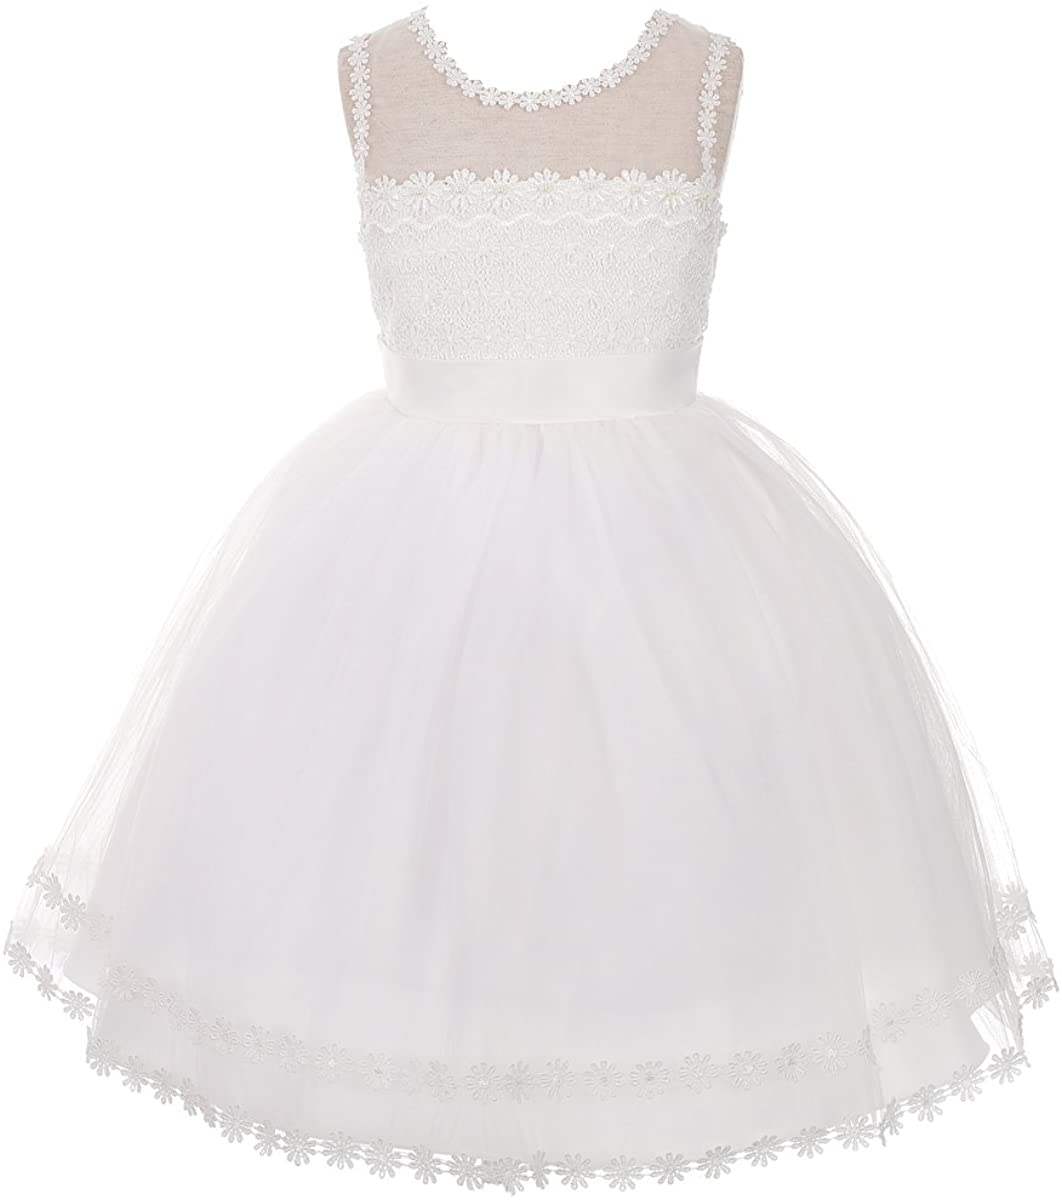 Dressy Daisy Girls' Embroidery Tulle Occasion Pageant Wedding Flower Girl Dress